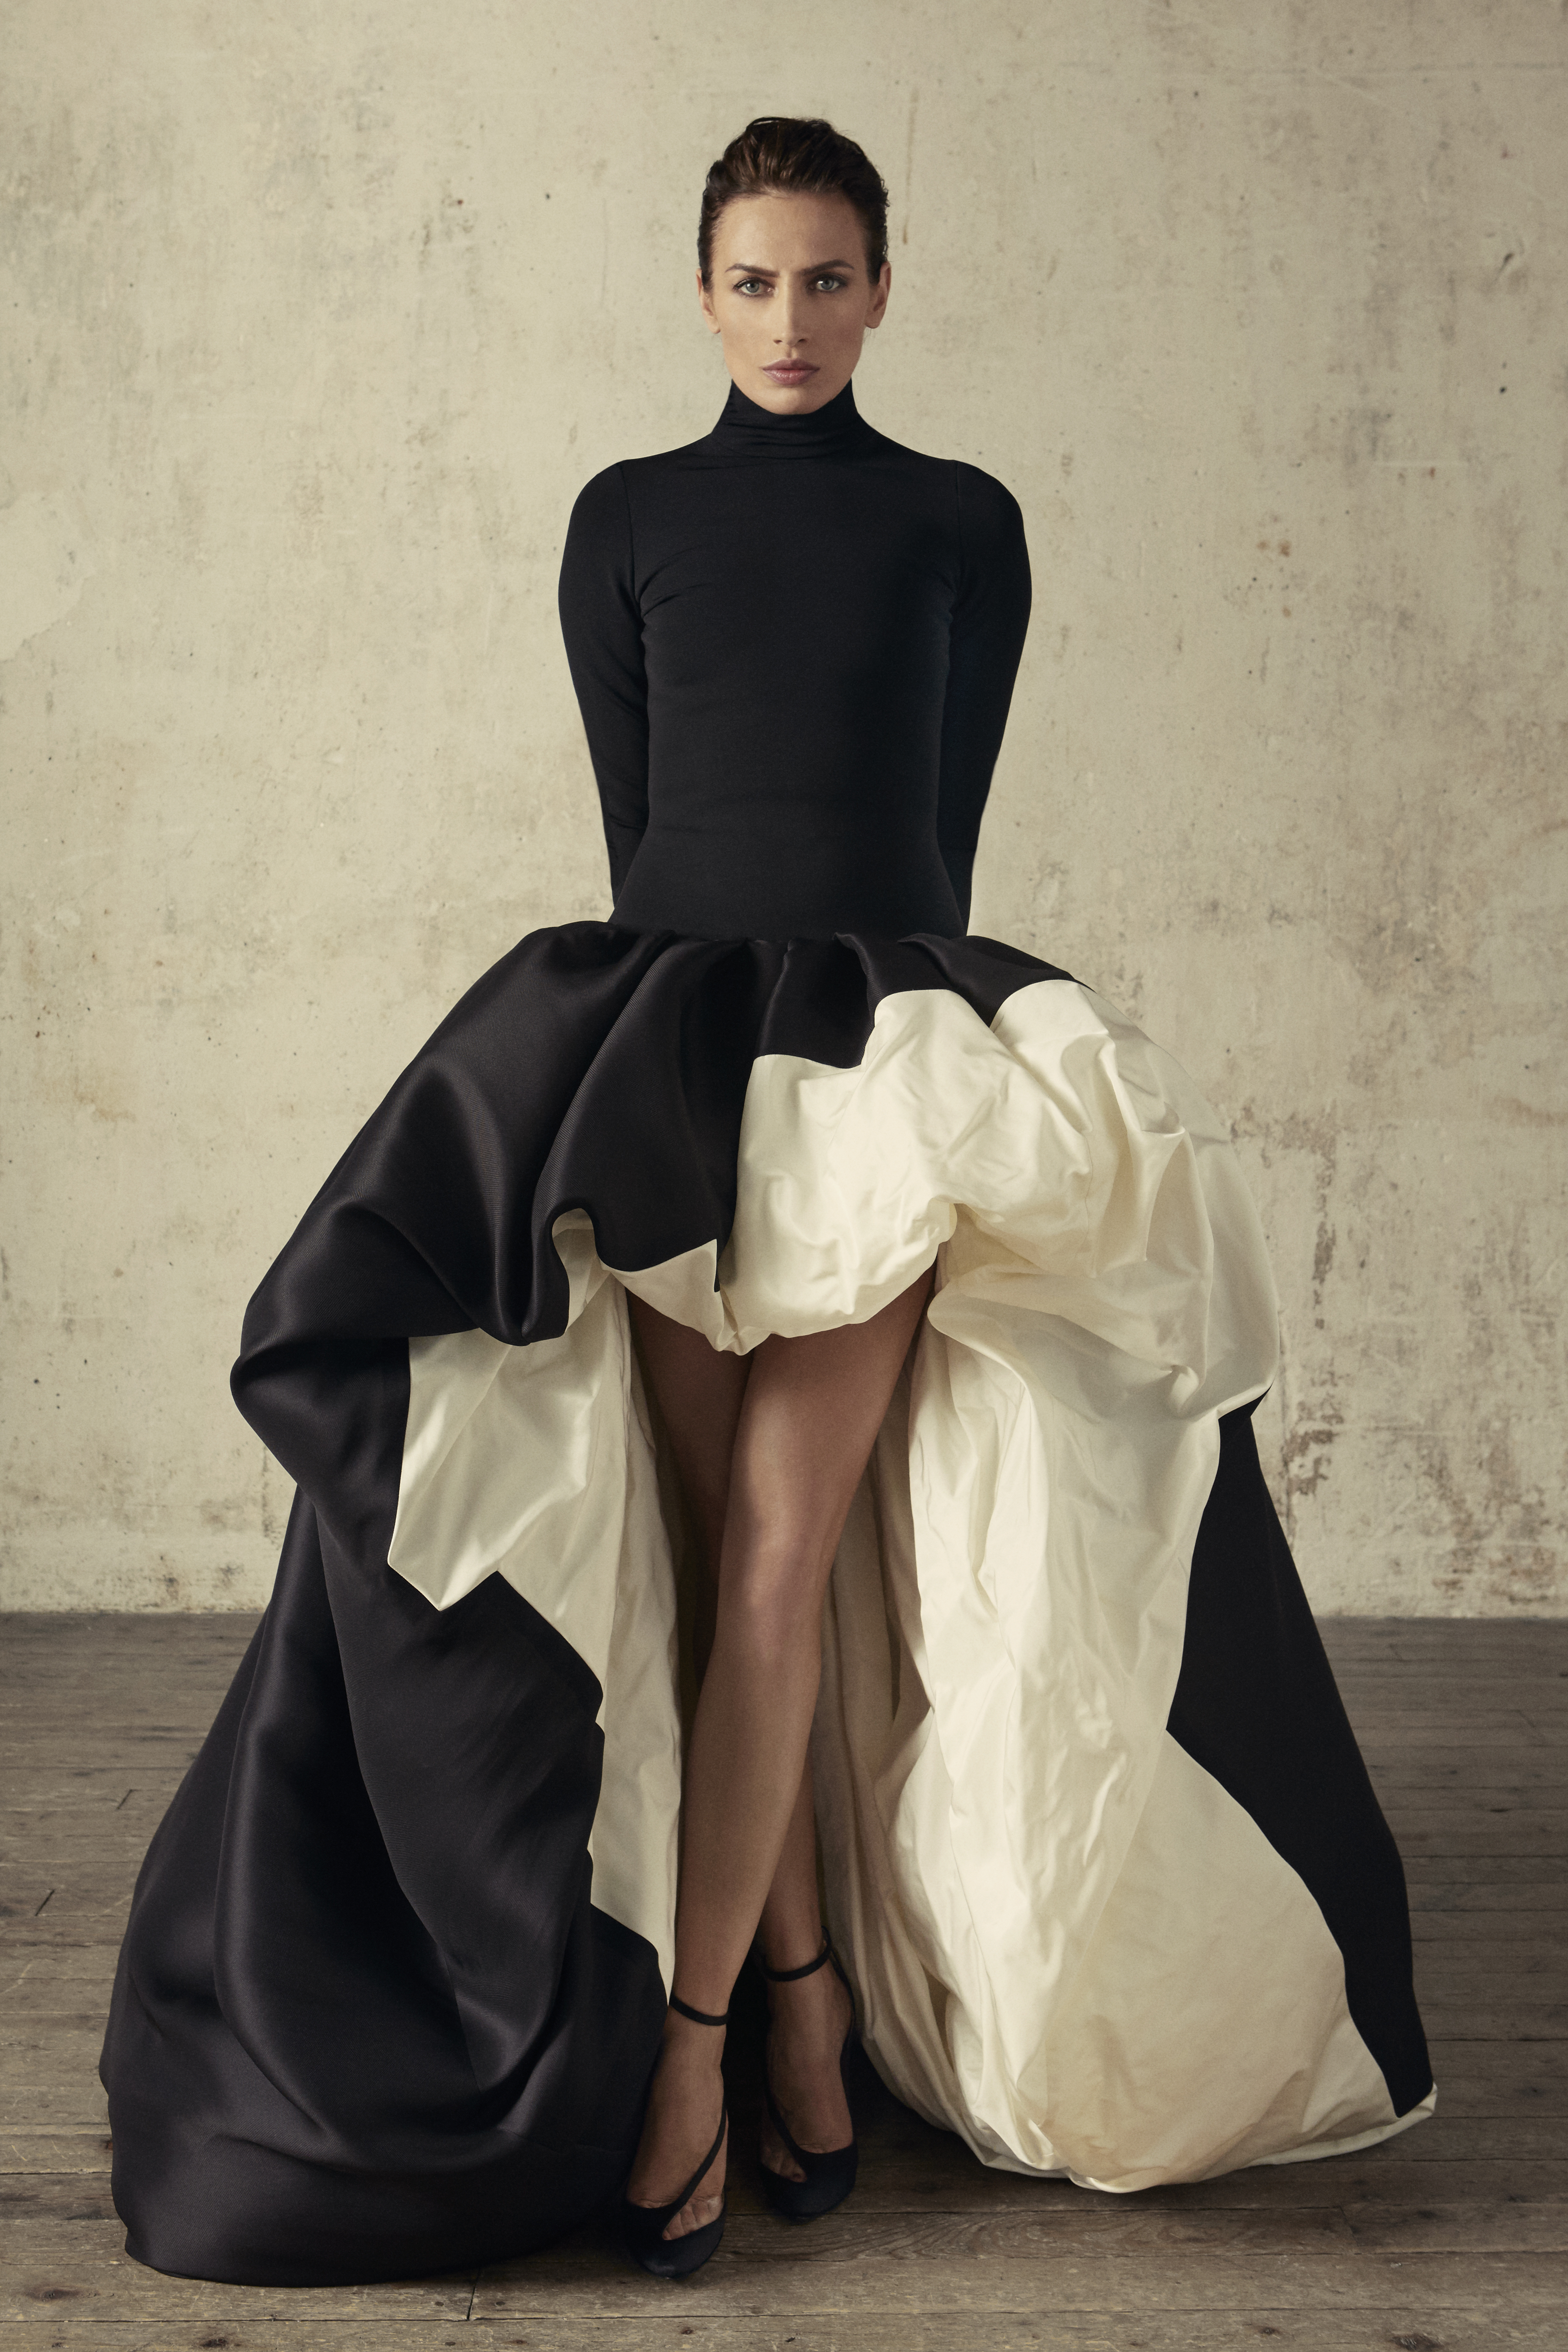 STEPHANE ROLLAND HAUTE COUTURE - Fall Winter 2016/17